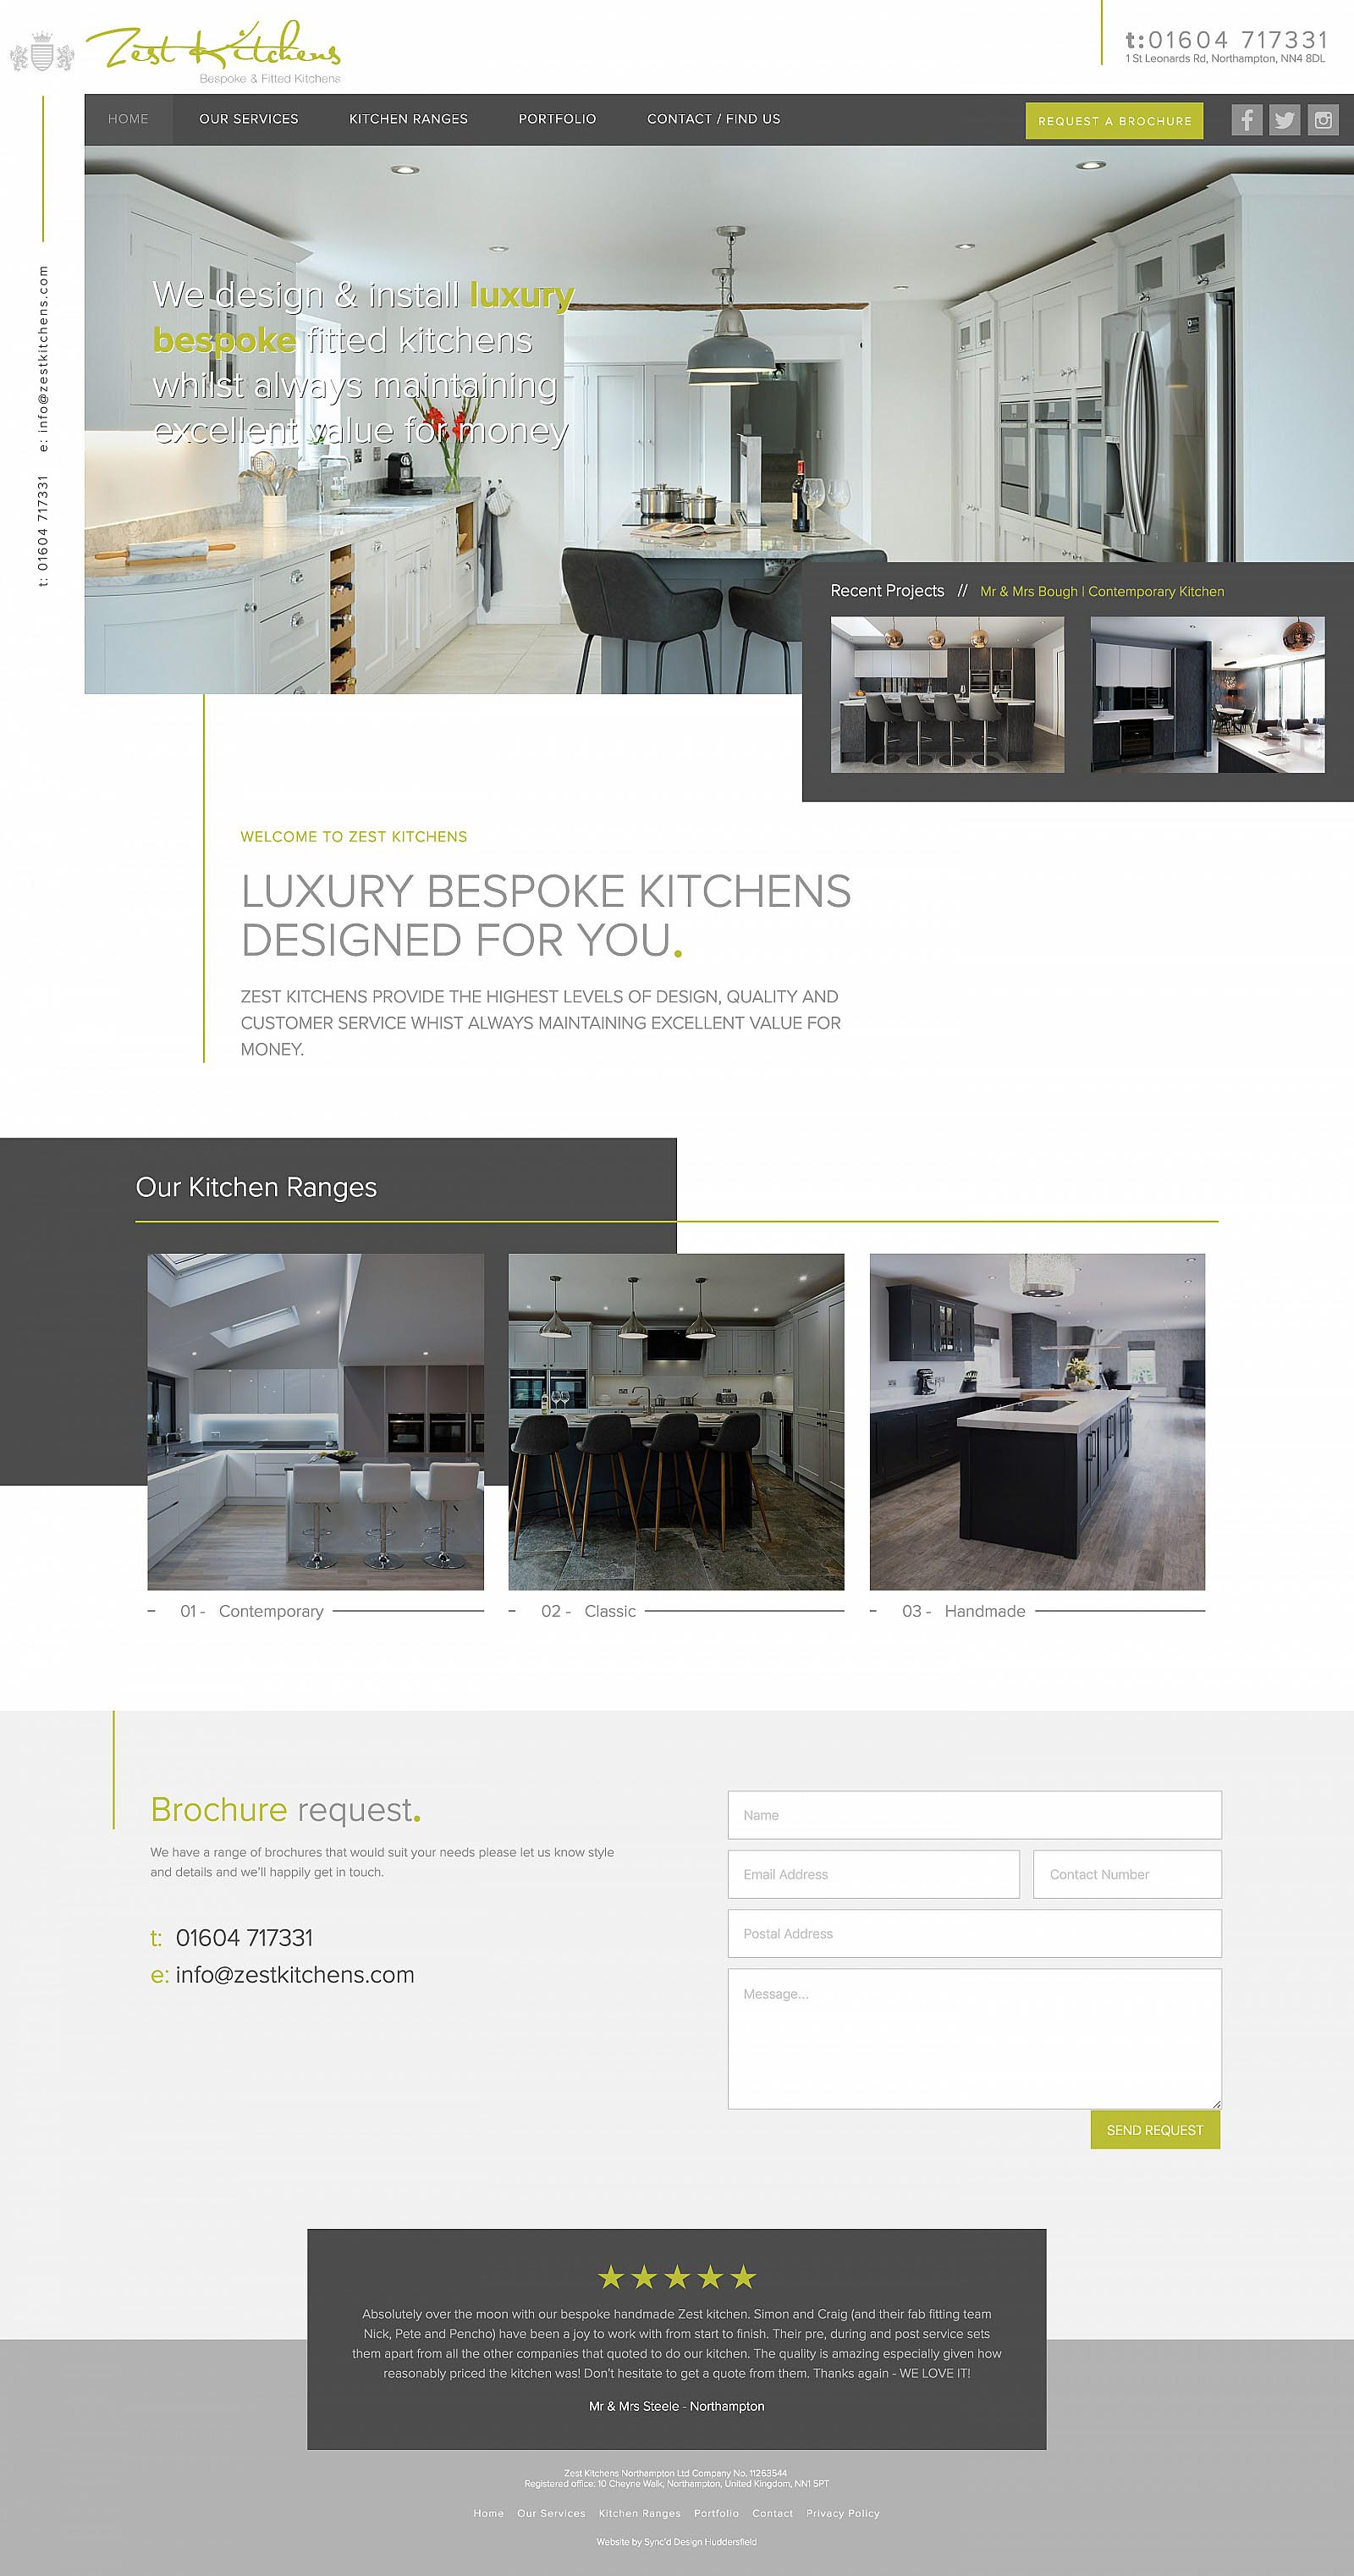 Zest Kitchens Home Page